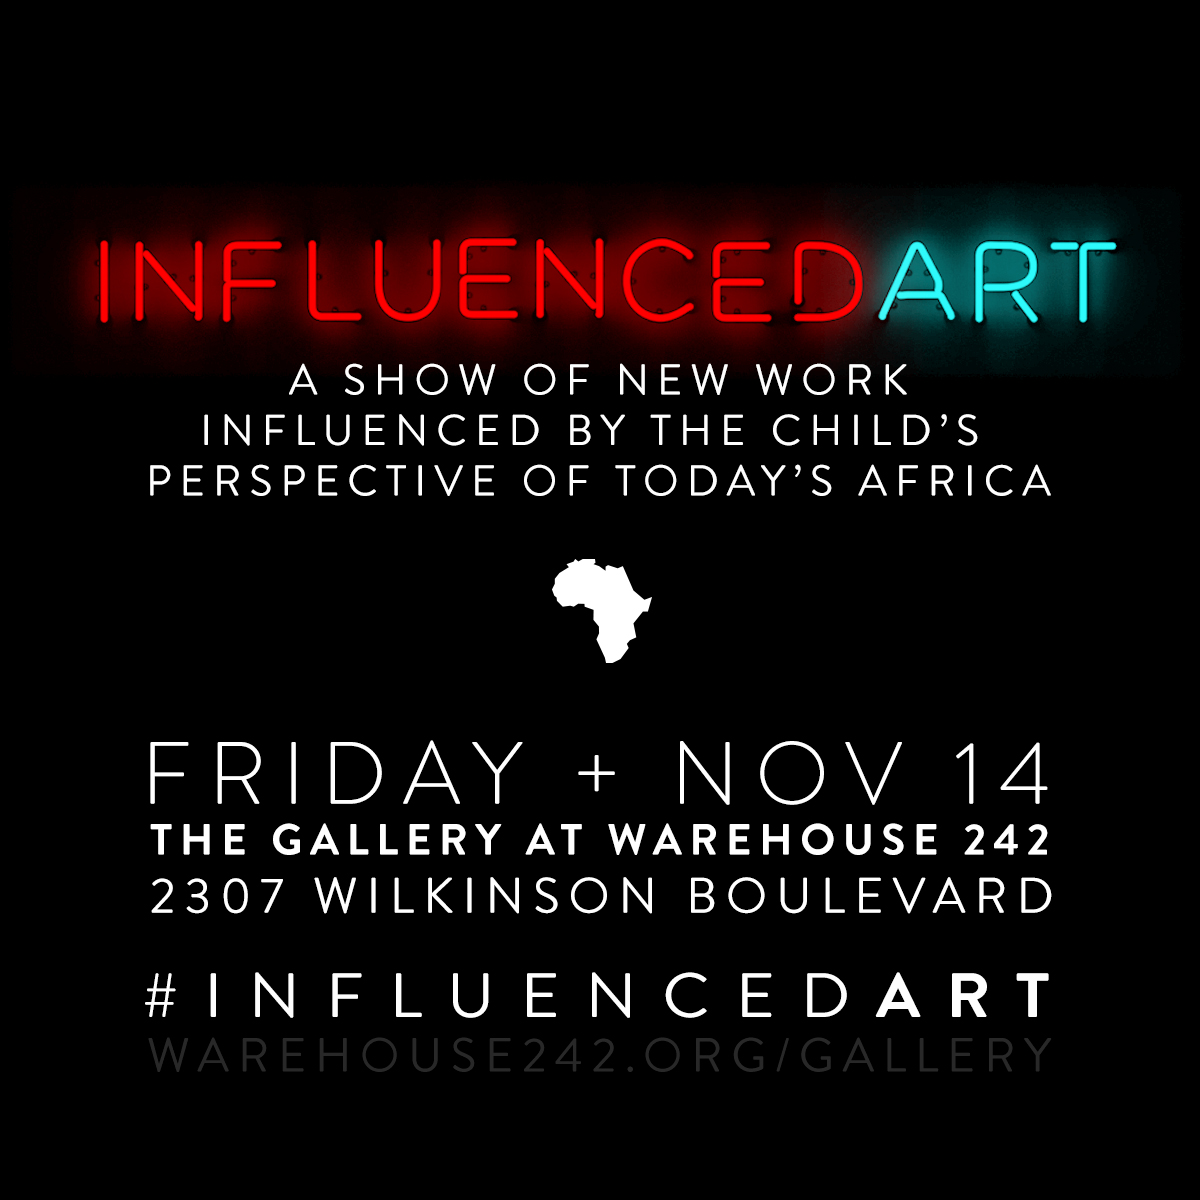 Influenced Art at Warehouse242 - November 2013 - January 2014The Gallery at Warehouses242 invited me to take part in an unbelievable collaboration between artists across the globe, local children of Charlotte, NC, and Rwandan artifacts that would inspire new learning opportunities for us all. For more insight on the experience, visit my collaboration page.